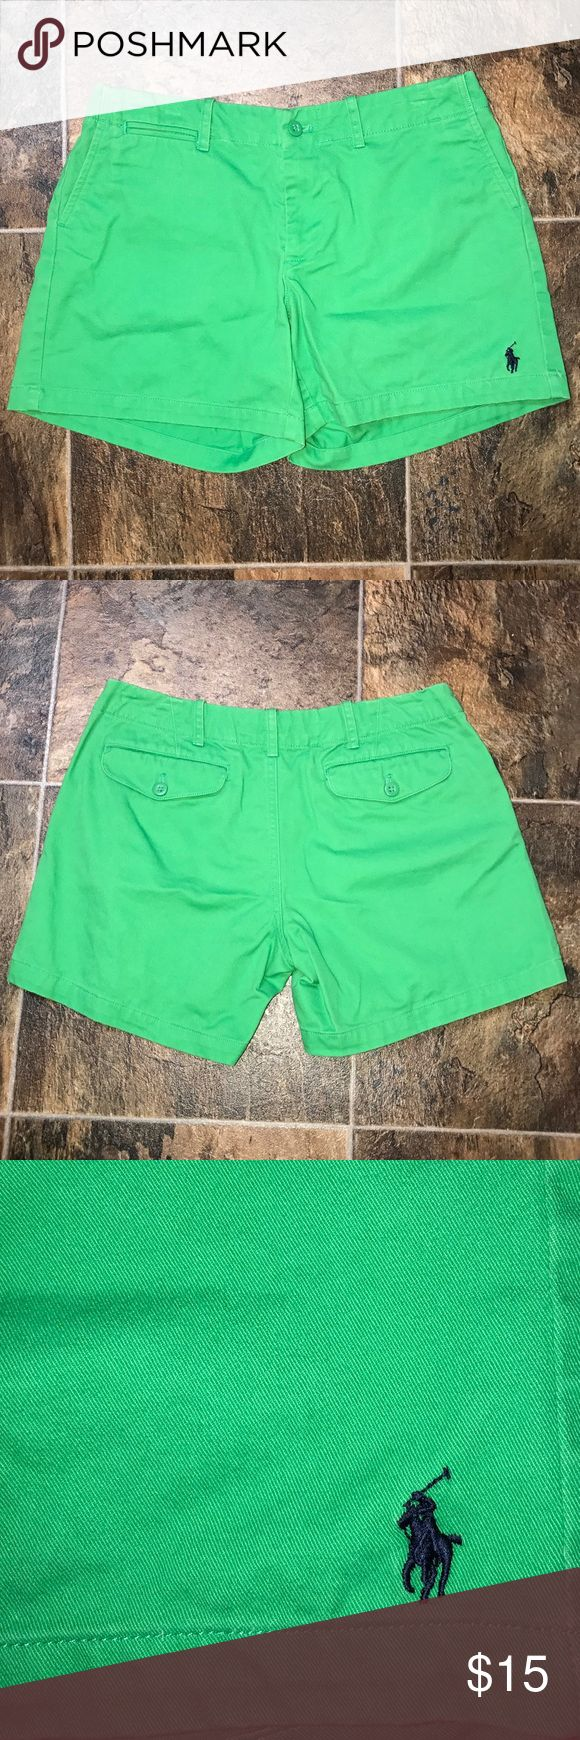 "Women's Green Ralph Lauren Shorts These are in really good worn condition. They are 12 1/2"" from the top of the waist band to the bottom of the leg. They have two ""mock"" pockets on the front and 2 pockets with button flaps on the back. They are 100% cotton and have the Ralph Lauren symbol on the front of the left leg. They are a darker shade of lime green. Ralph Lauren Shorts"